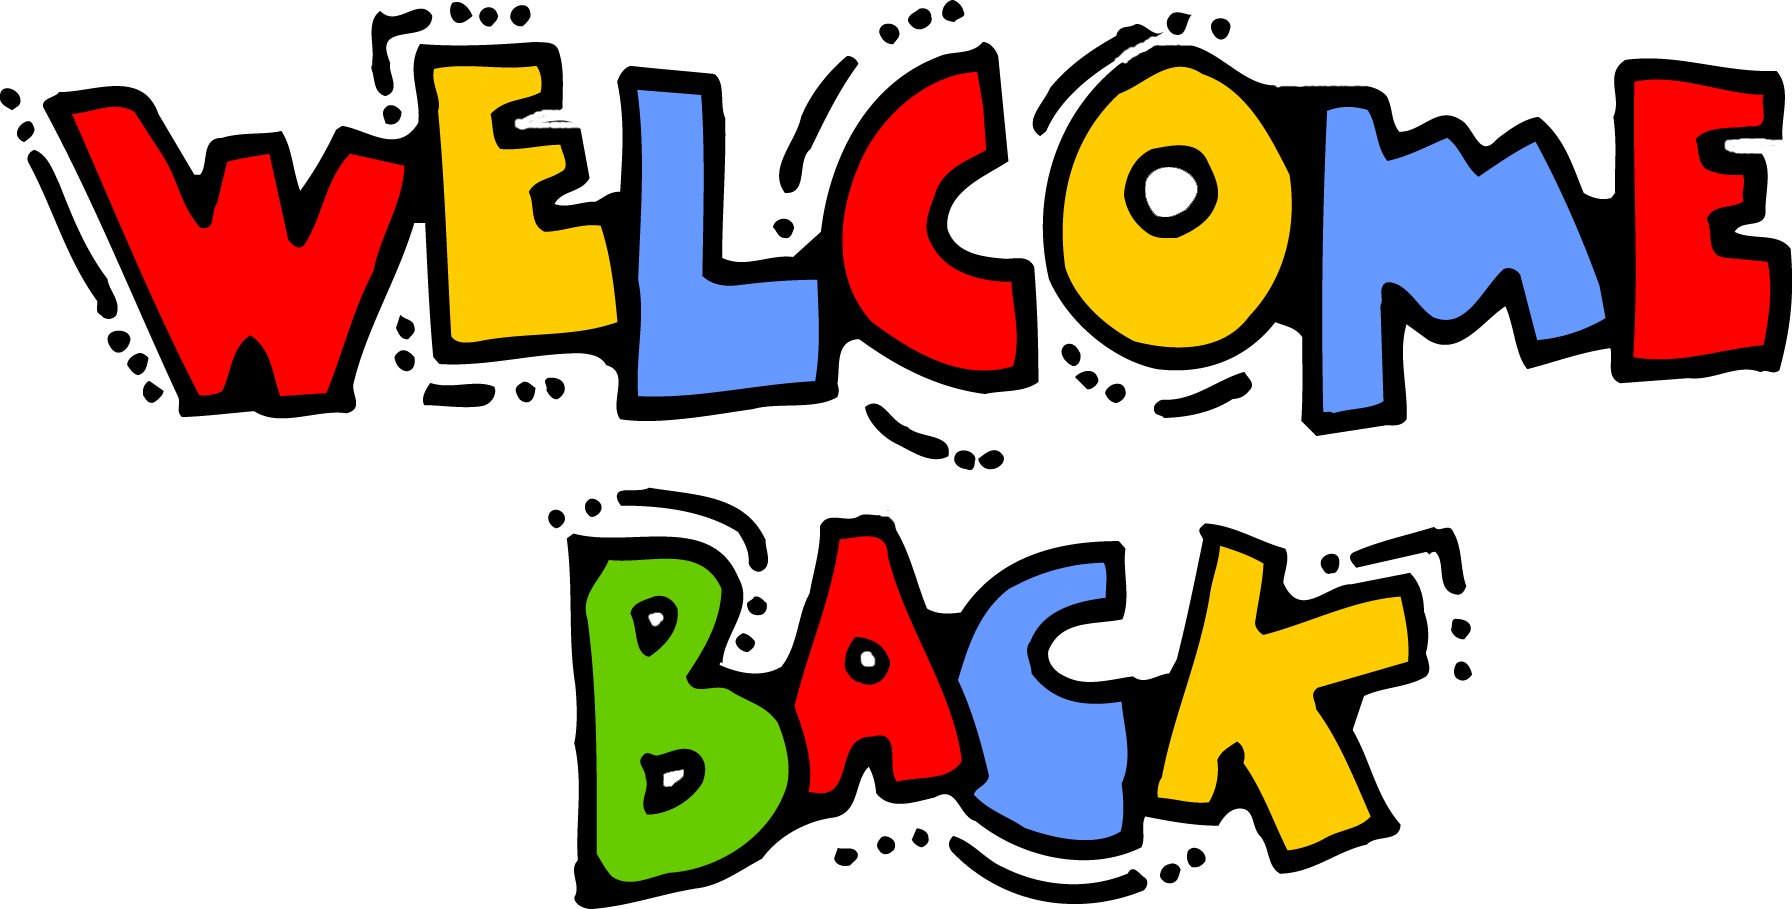 Welcome Back Signs Png & Free Welcome Back Signs.png Transparent Images  #117382 - PNGio